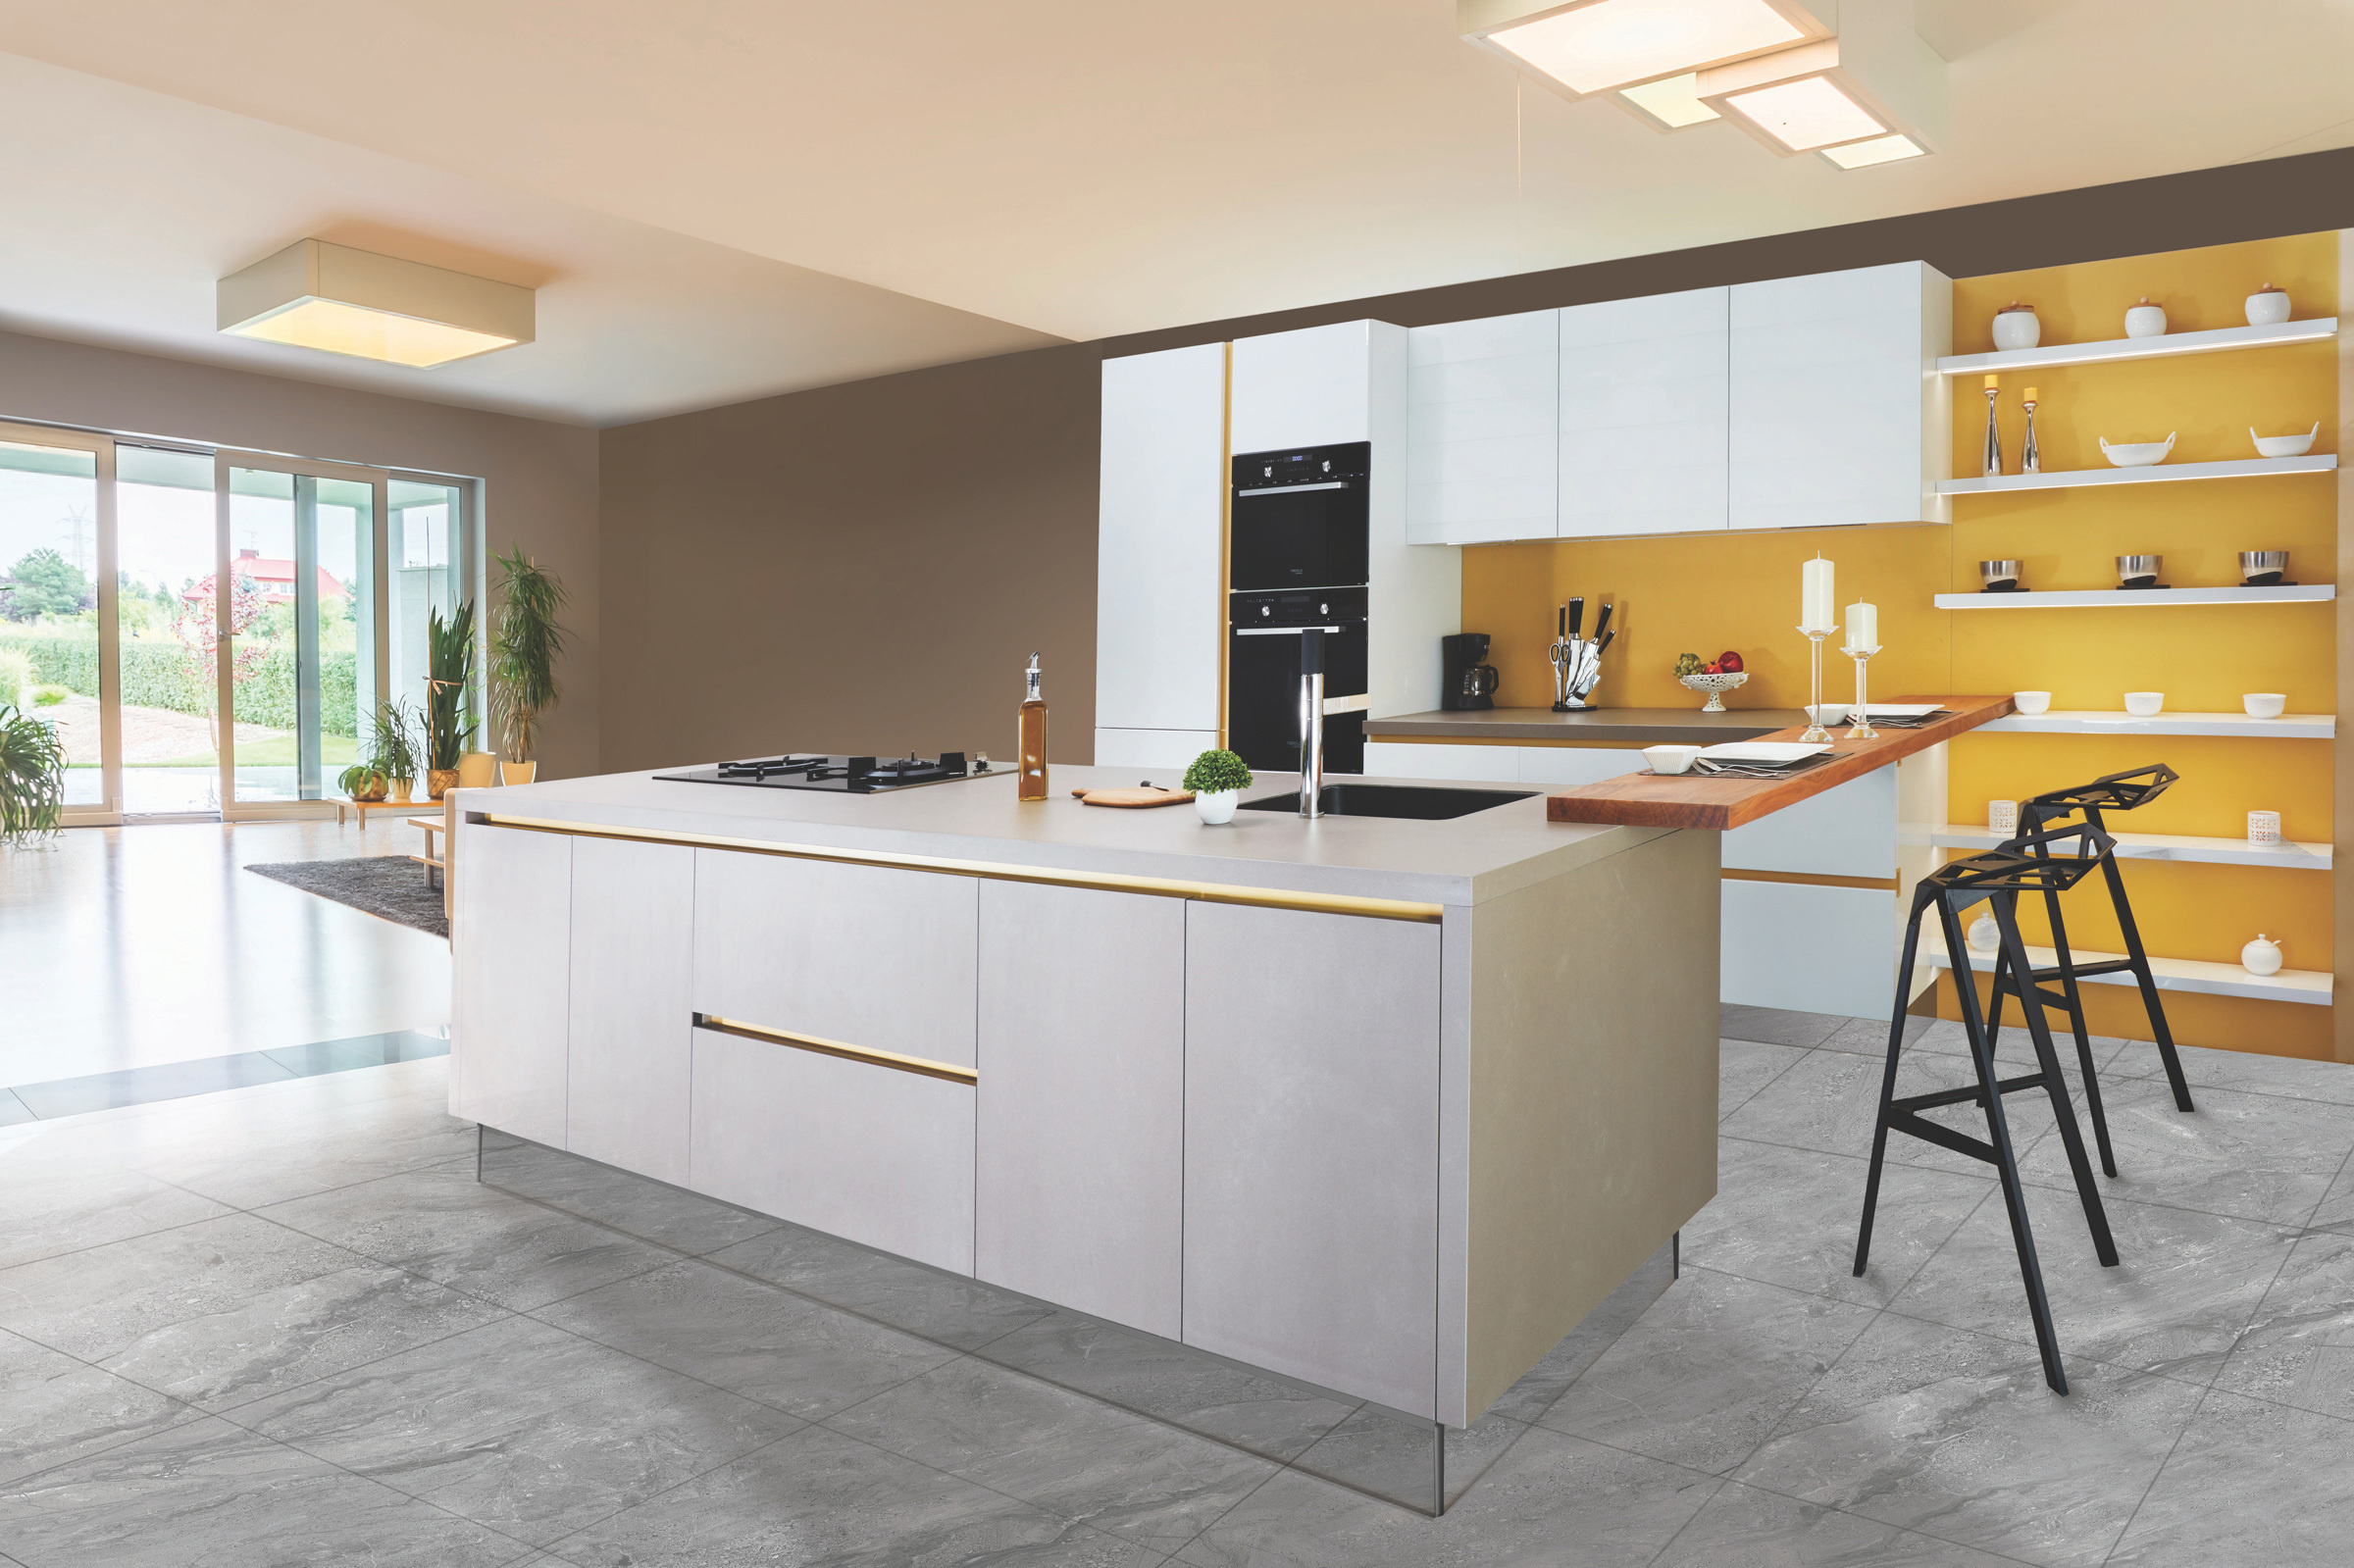 cabinets-contemporary-counter-2089698_2400.jpg